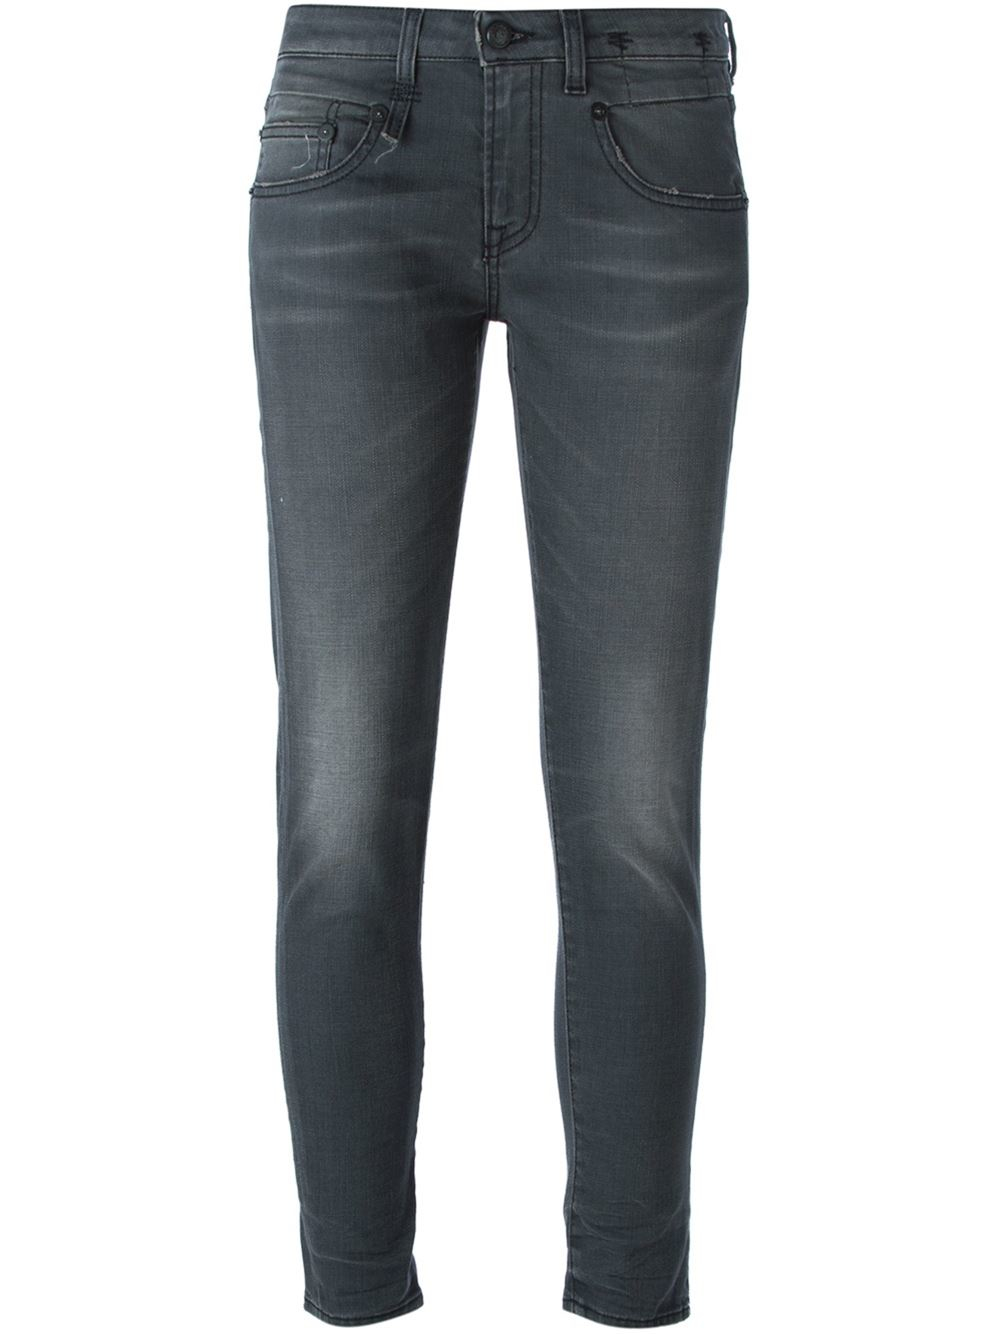 lyst  r13 cropped skinny jeans in gray